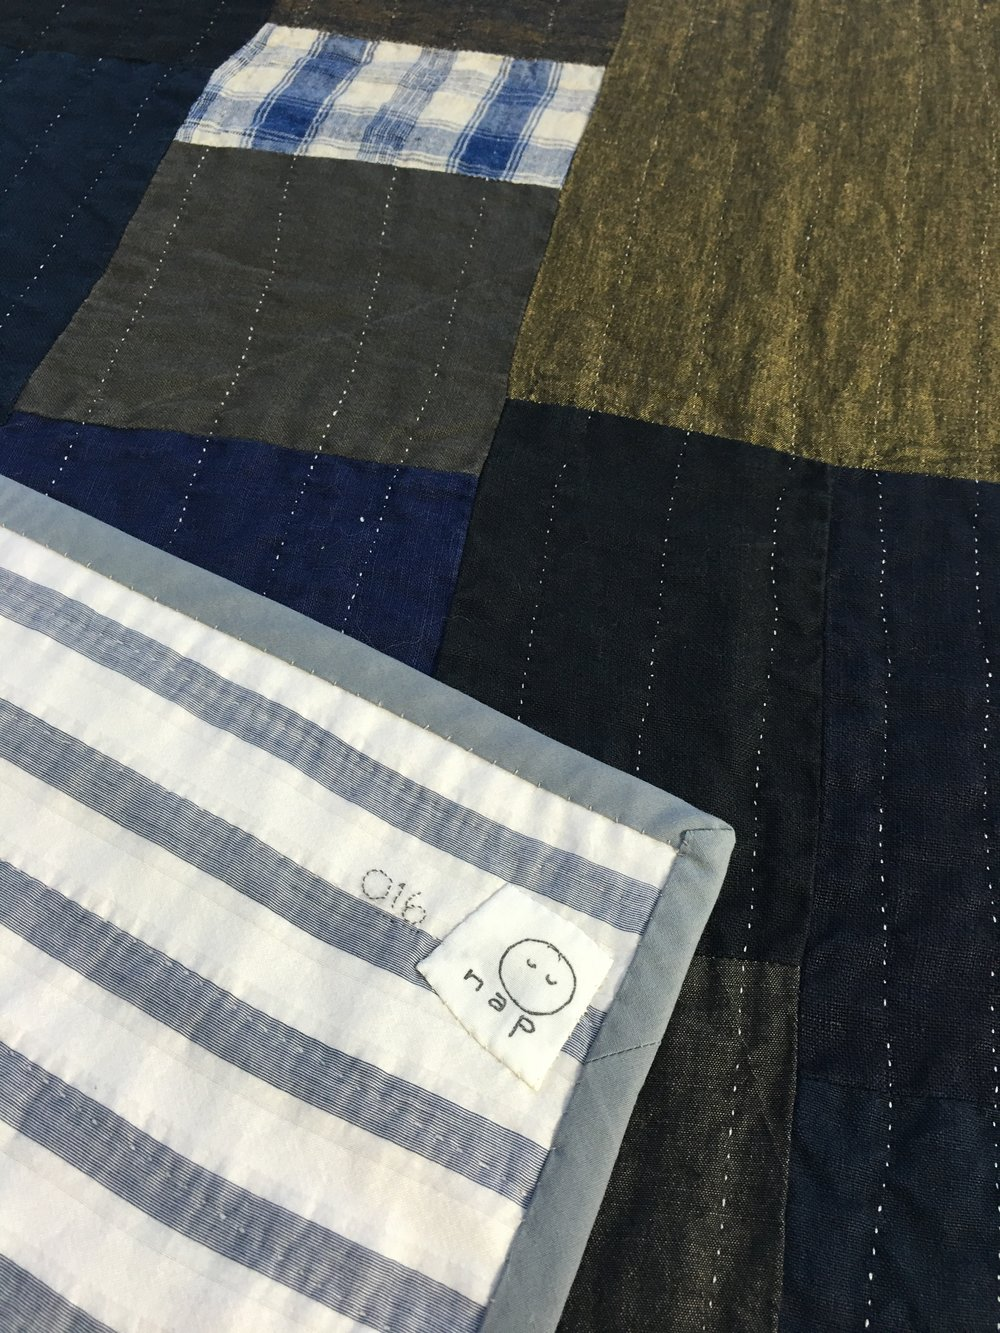 [sold]  nap quilt no. 016 reverse and detail  woven stripes silk/cotton backing with cotton binding